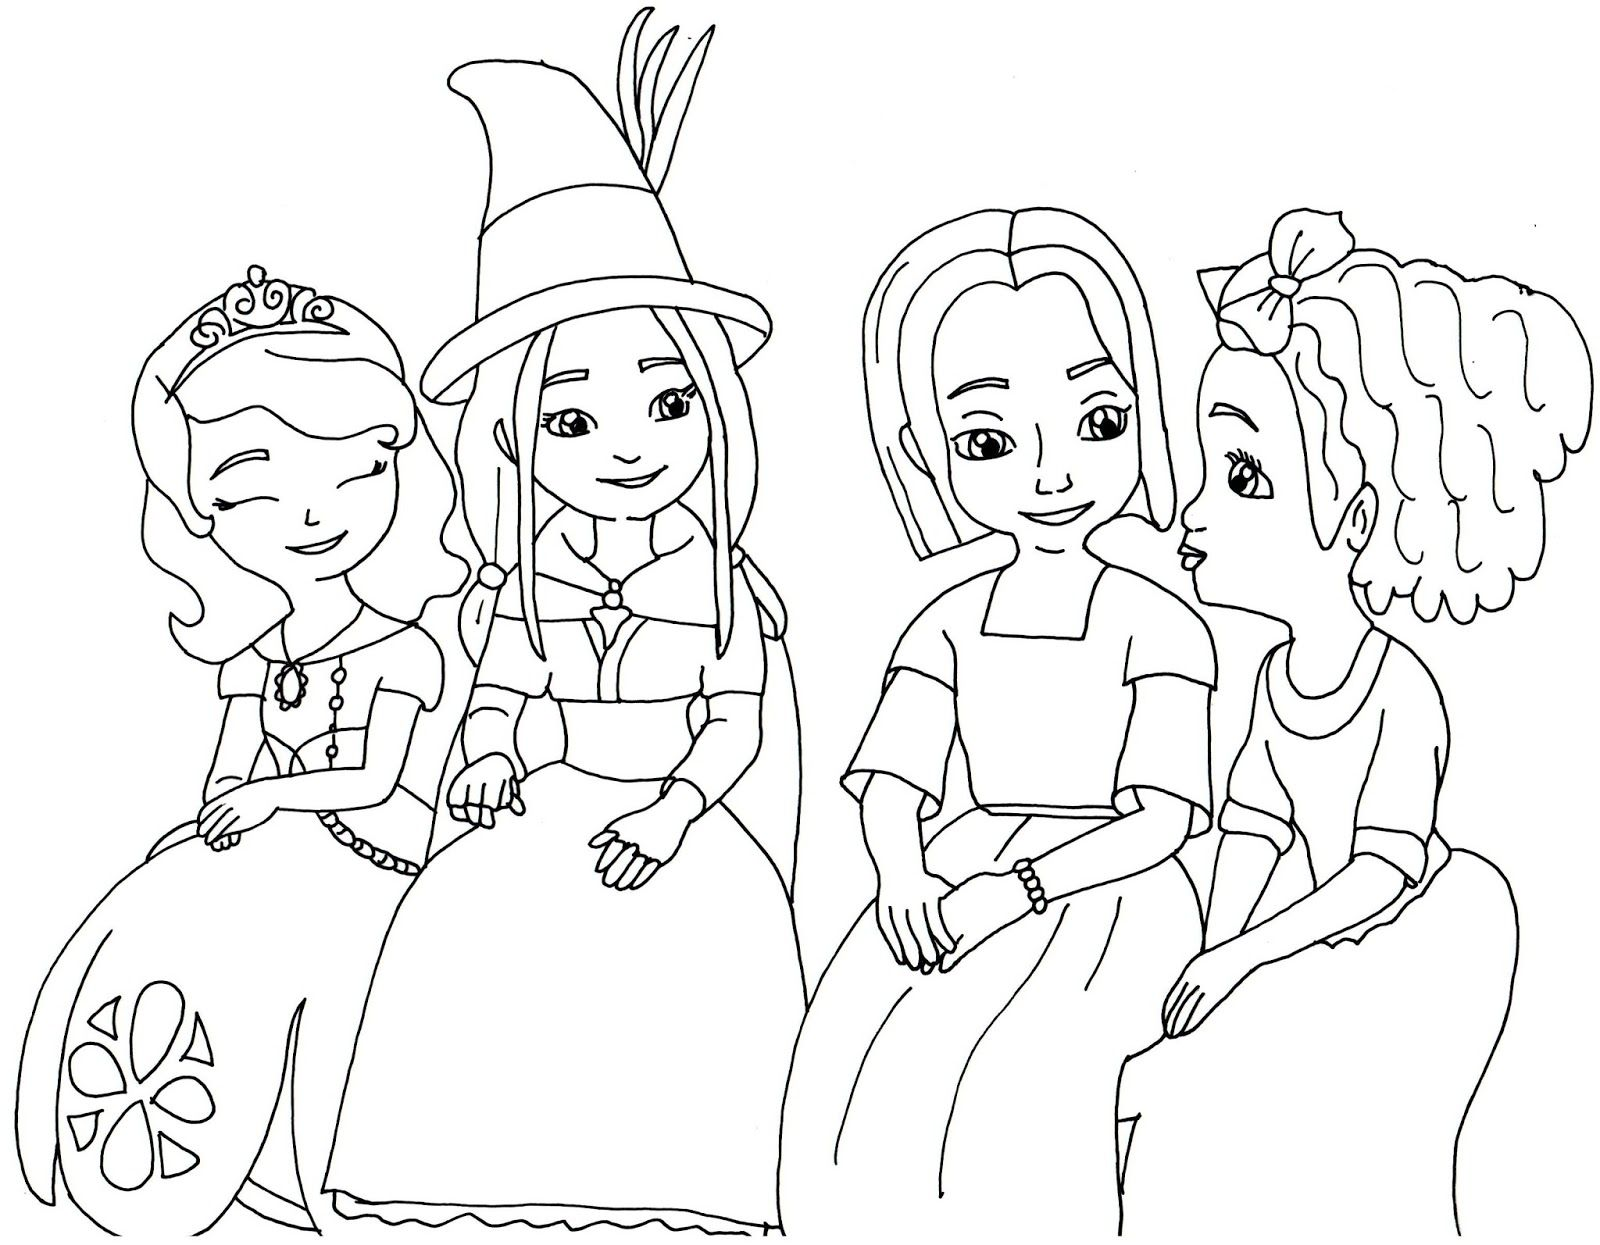 Princess Sofia Coloring Page Futpal Com Coloring Pages Sofia The First Characters Pokemon Coloring Pages